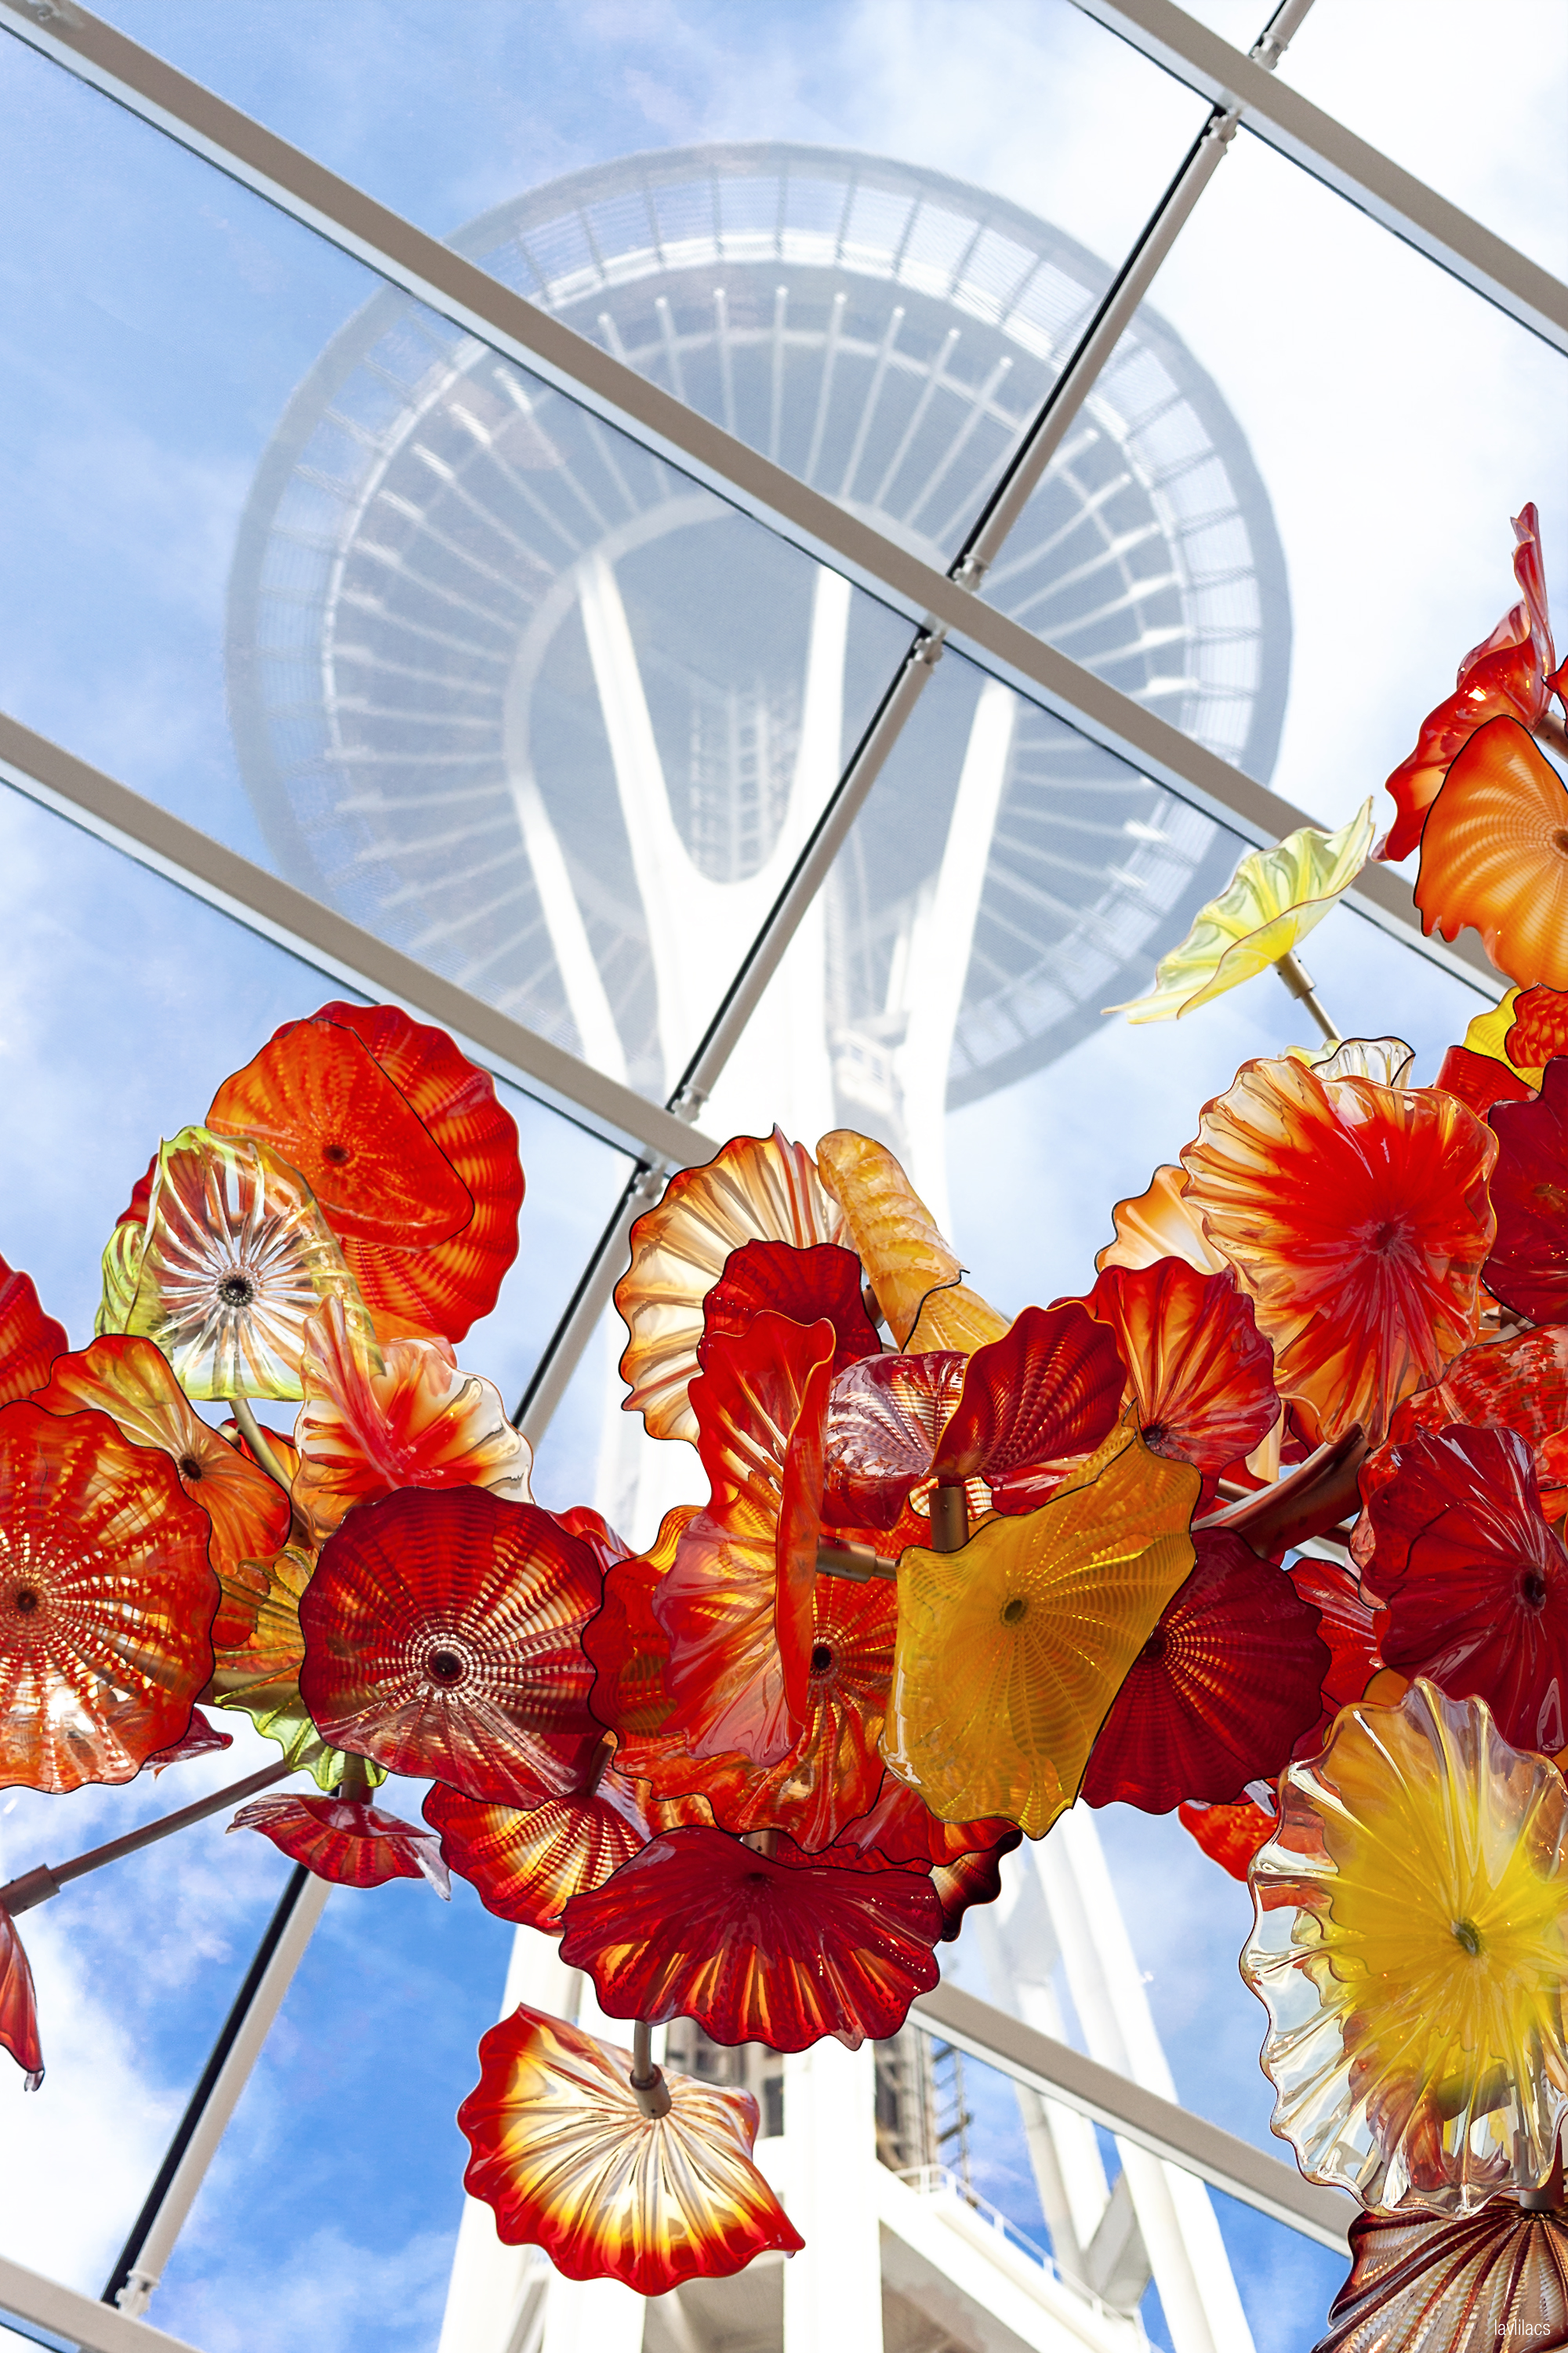 lavlilacs Seattle Center, Seattle, Washington Chihuly Garden and Glass - Space Needle and Glasshouse